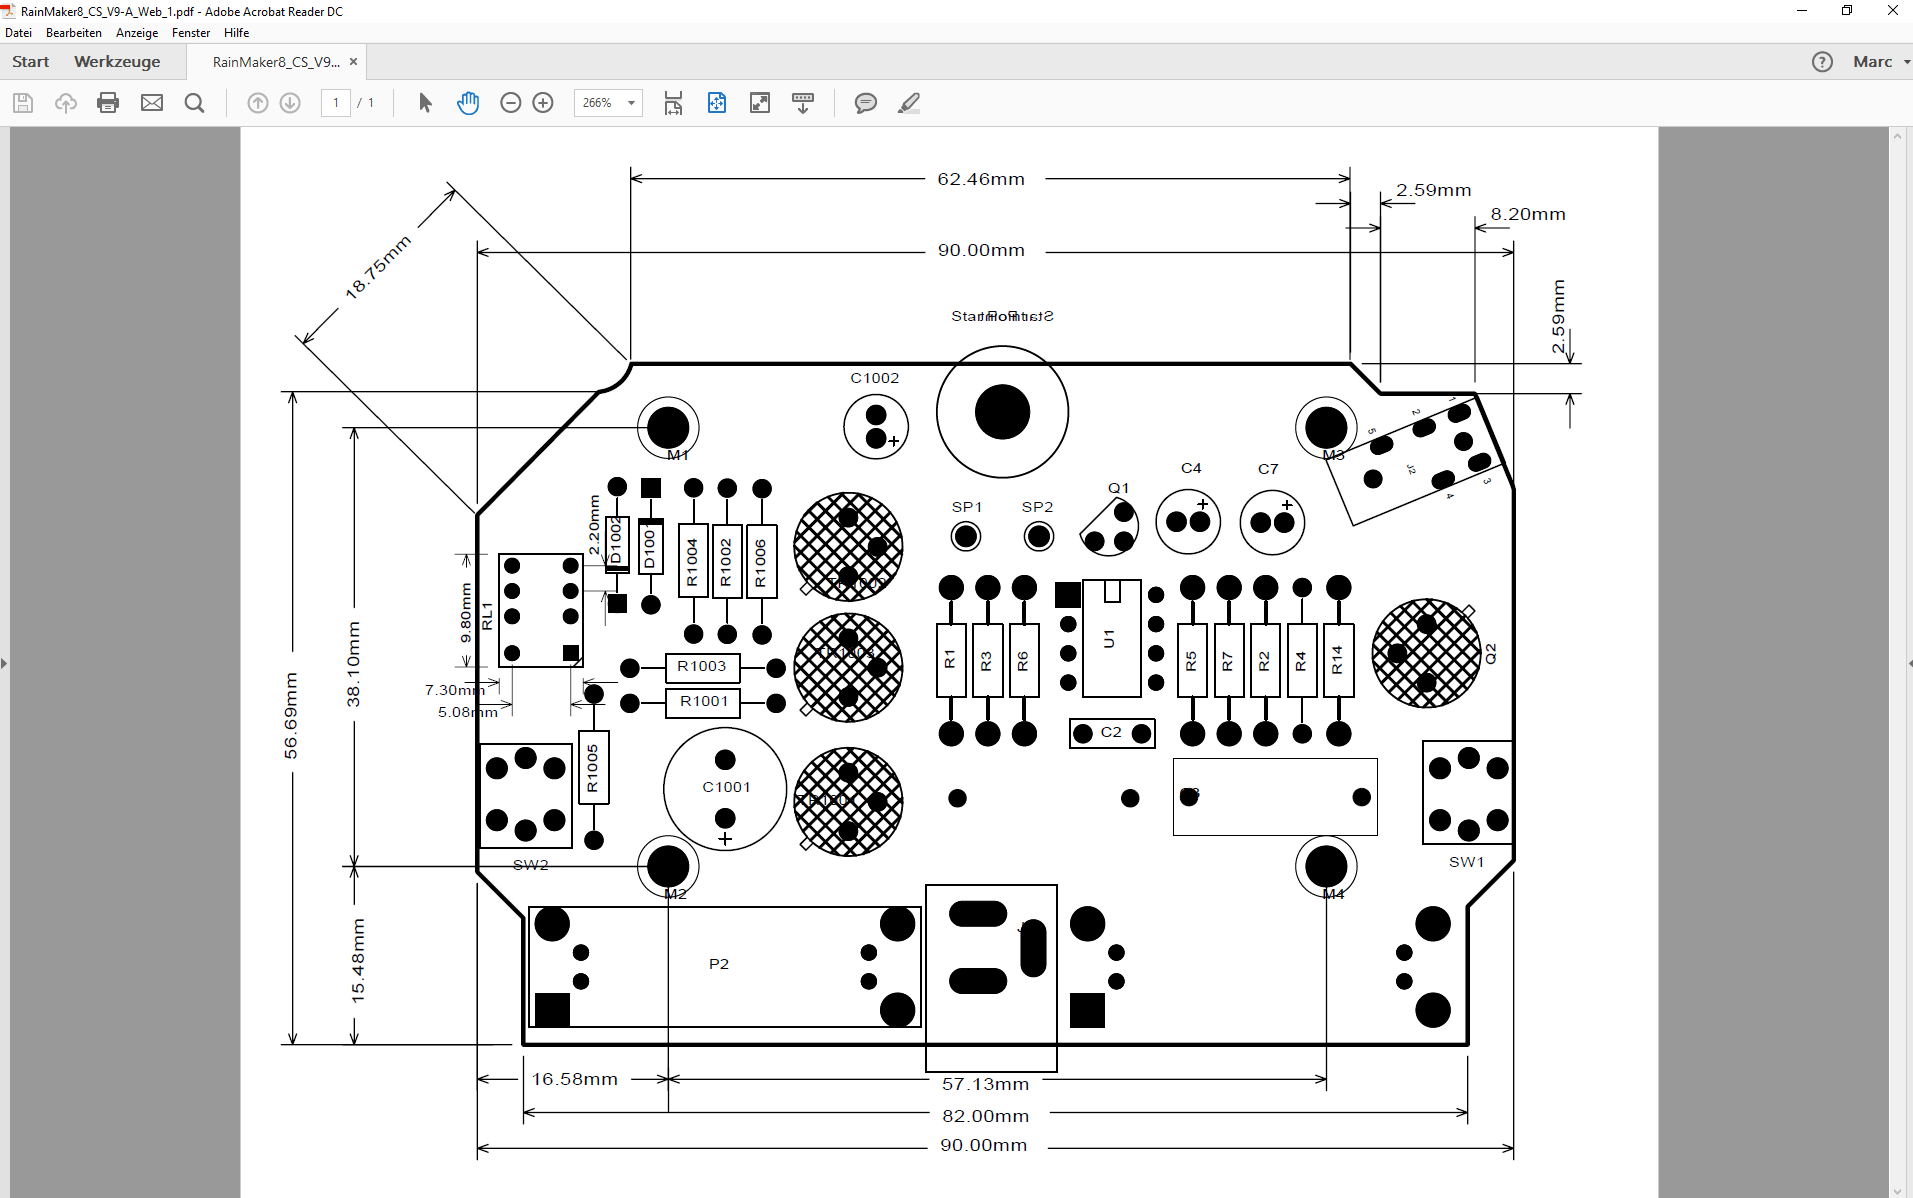 pcb design software cadstar variant manager Bestueckungs Variante A PCB ohne bestueckte PDF